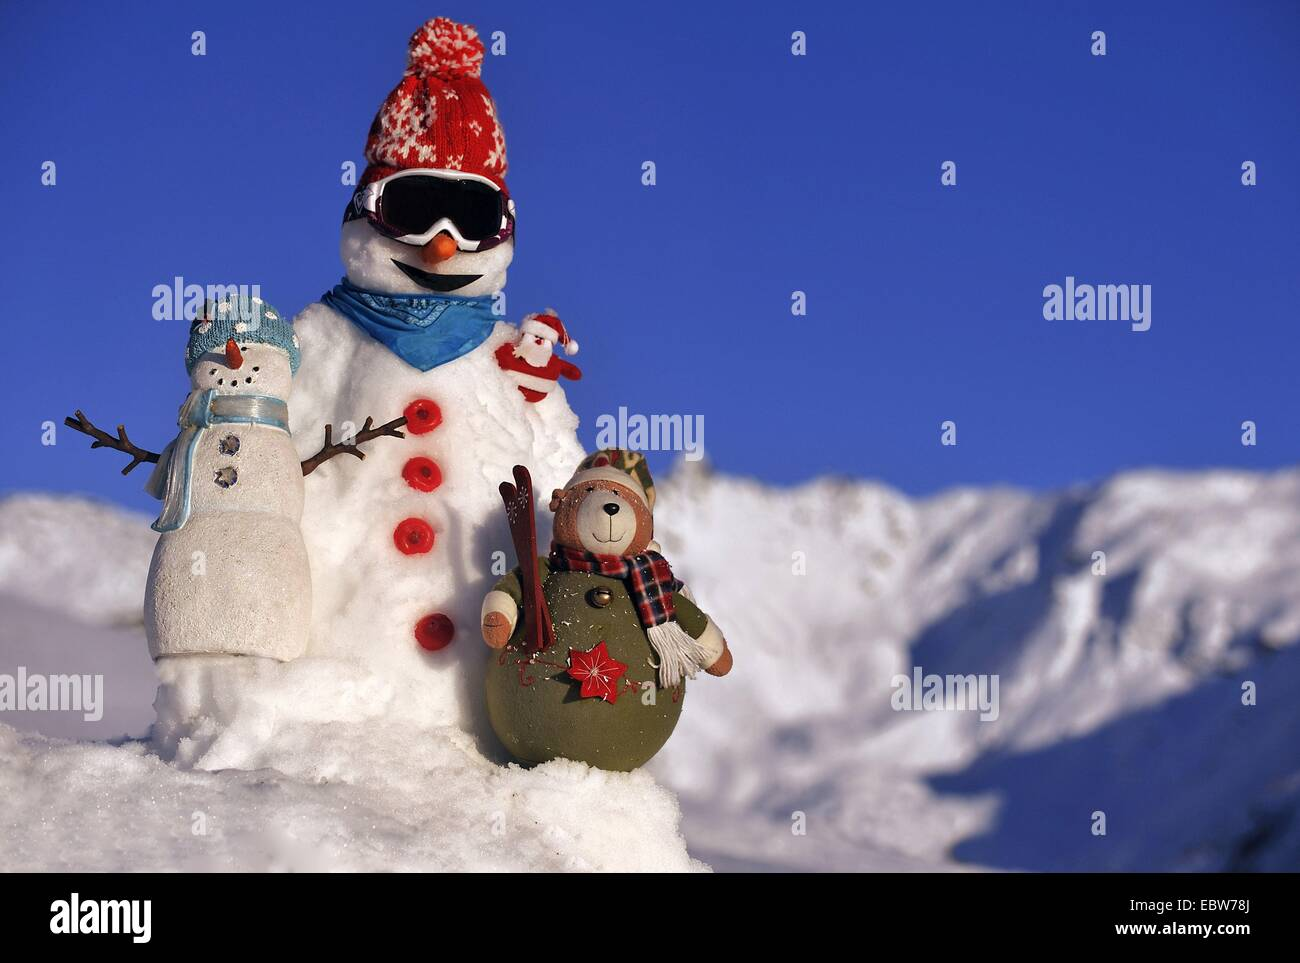 snowman with bobble hat and ski goggles in front of snow covered mountain range and blue sky, France - Stock Image